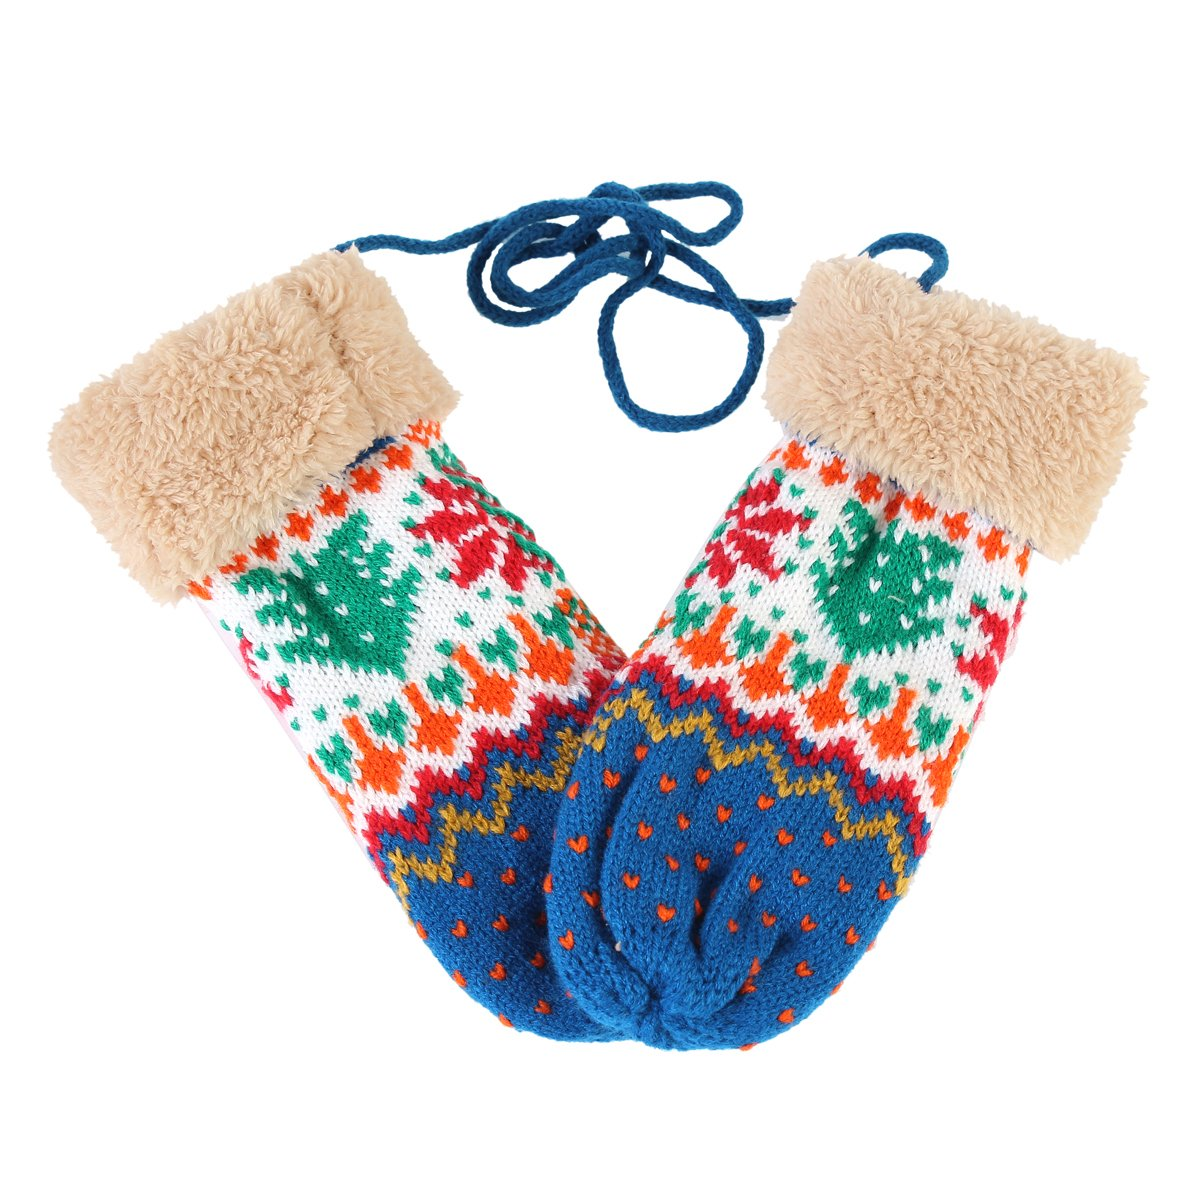 Damara Womens Warm Hand-knit Tree Printed Faux-fur Halter Mitten,Blue